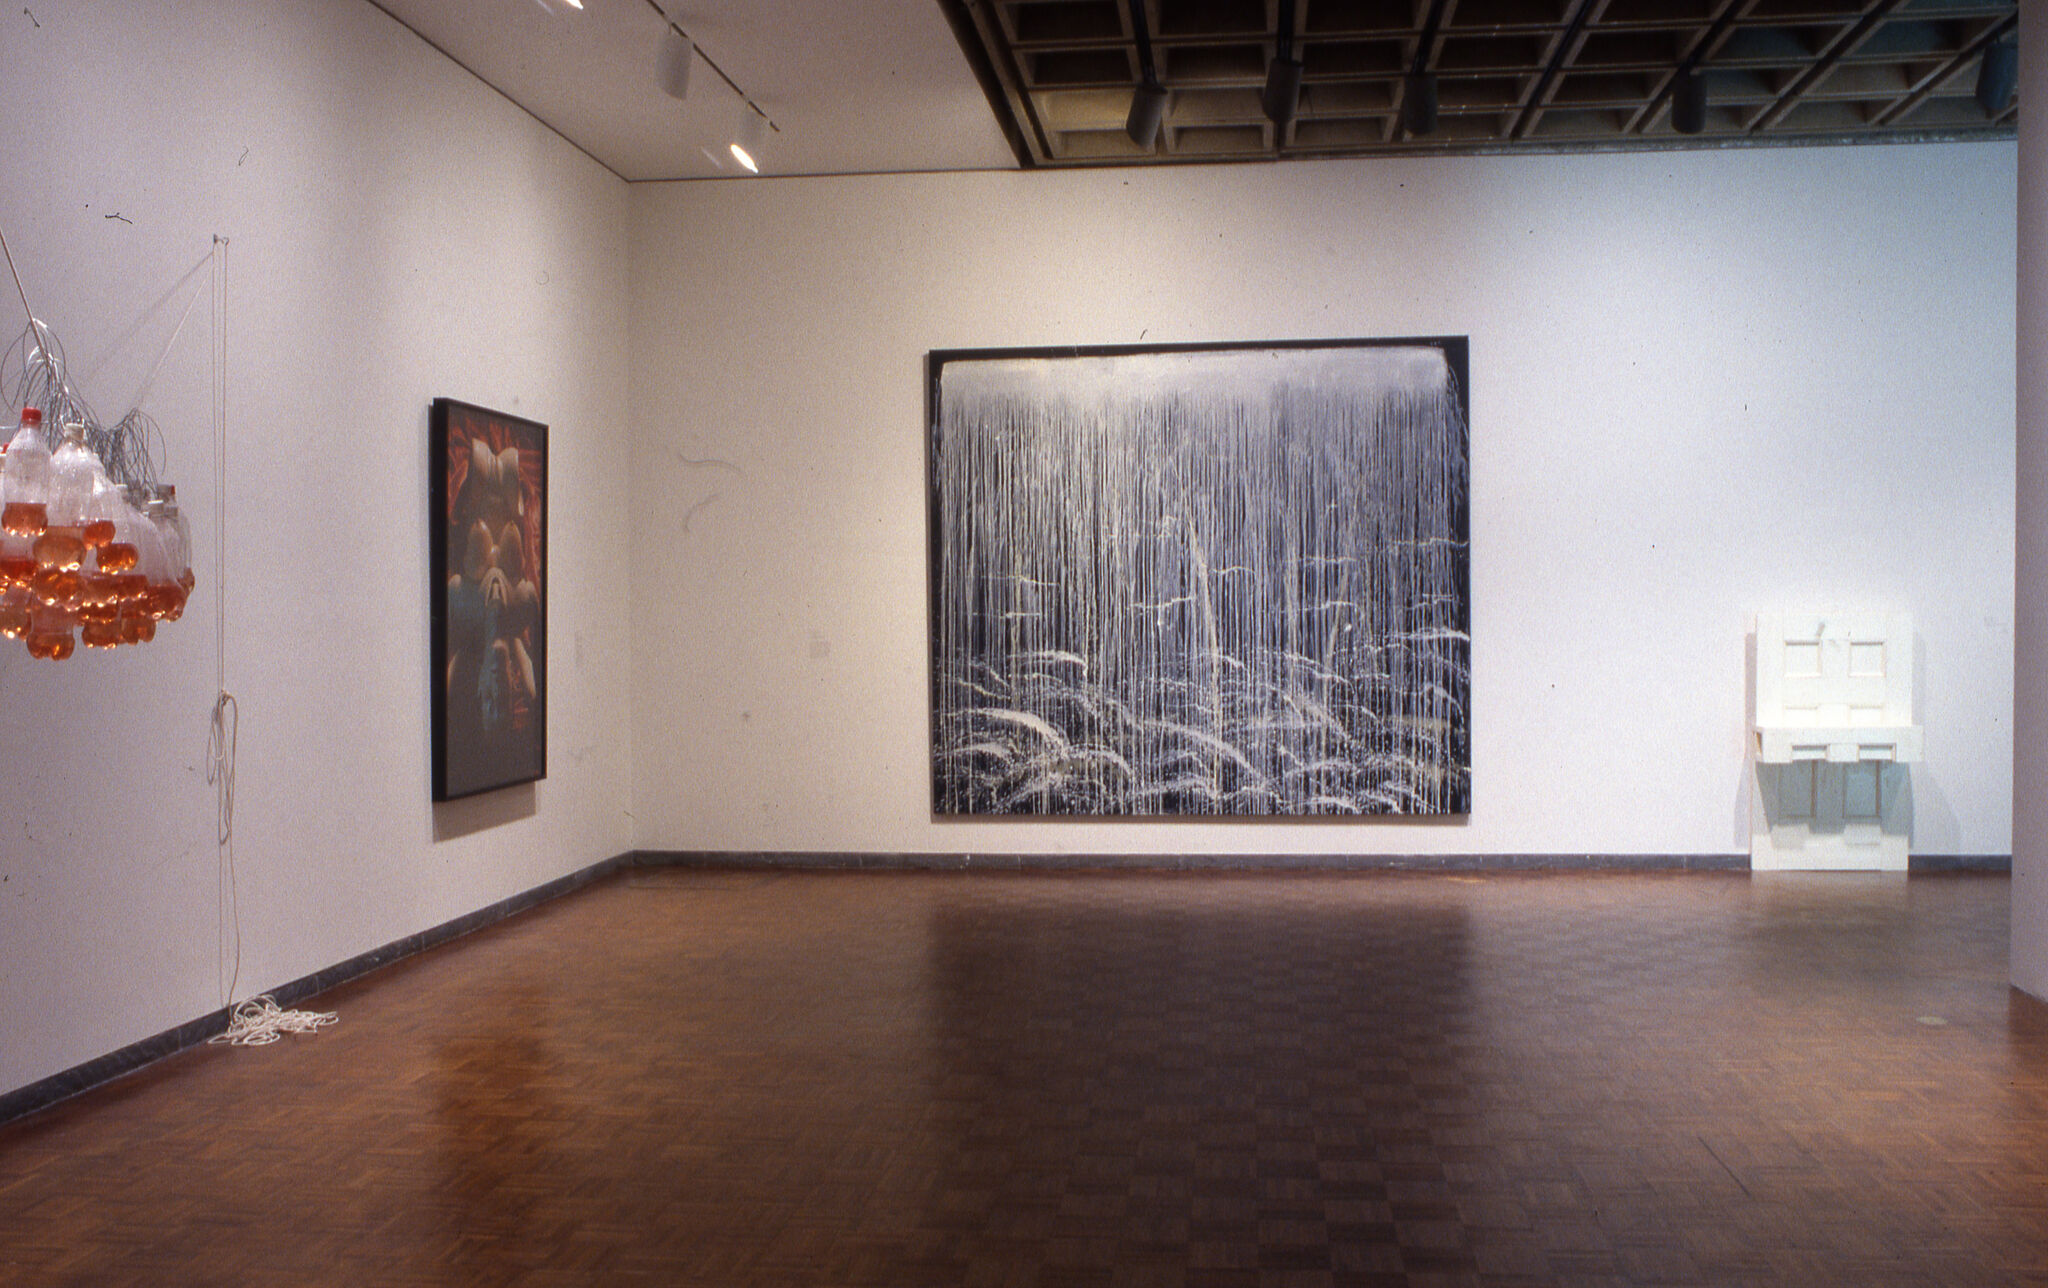 Works of art, including sculptures and paintings, displayed in a gallery.